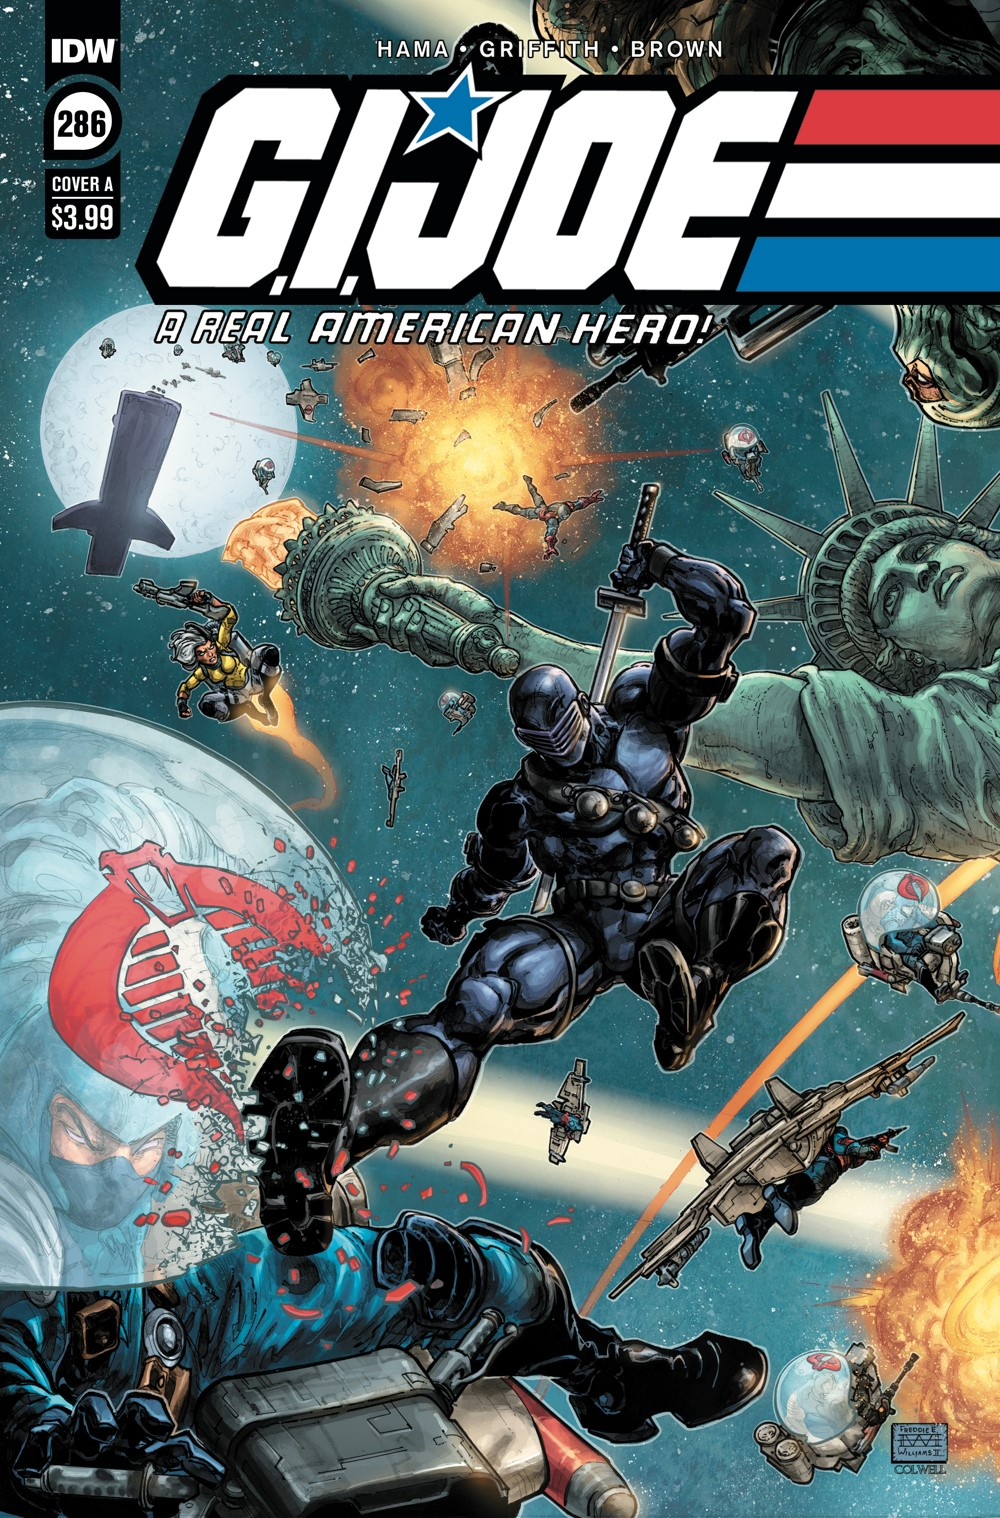 GIJoeRAH286-coverA ComicList: IDW Publishing New Releases for 09/22/2021